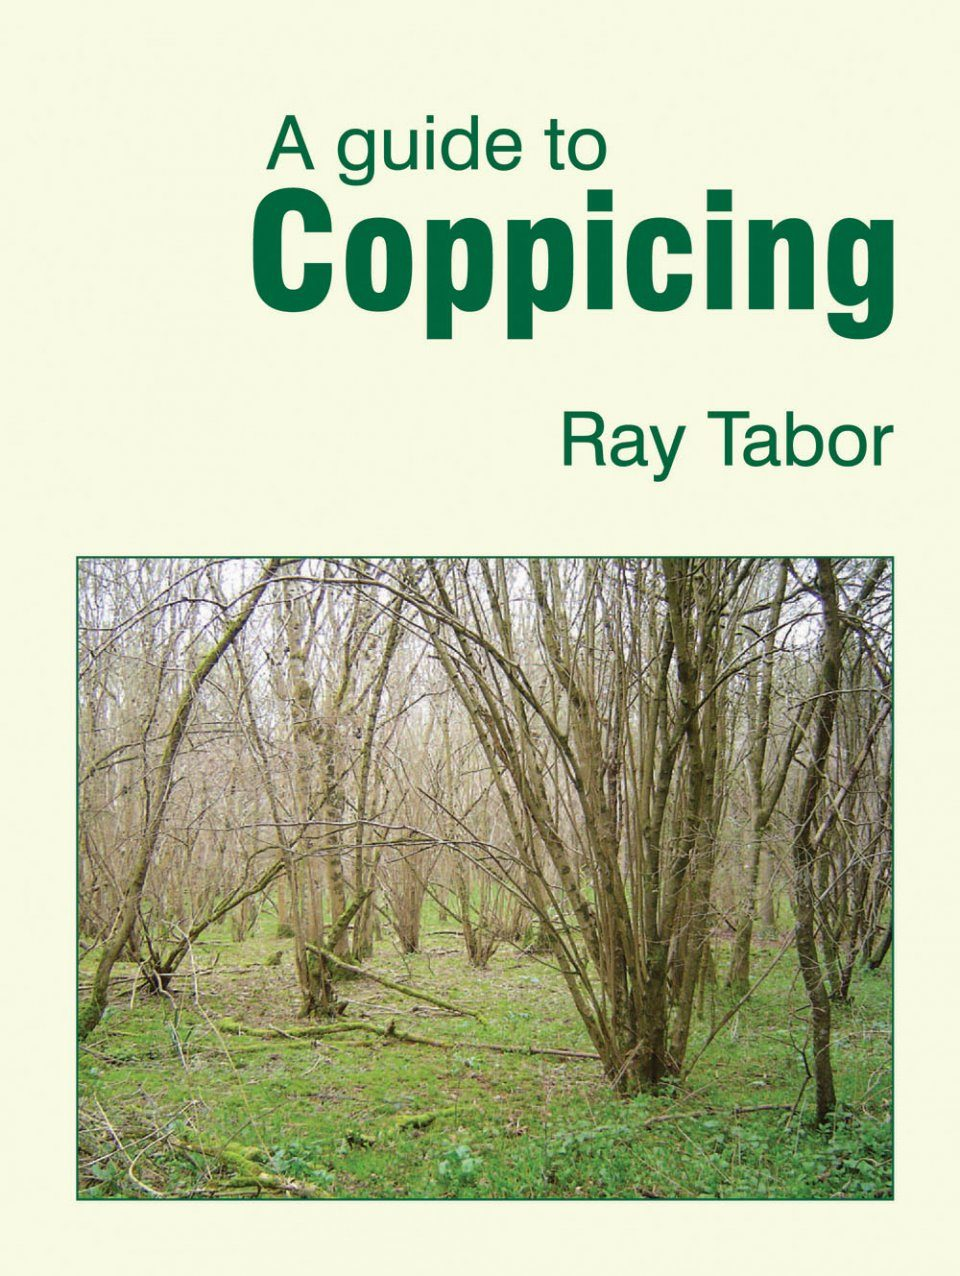 A Guide to Coppicing